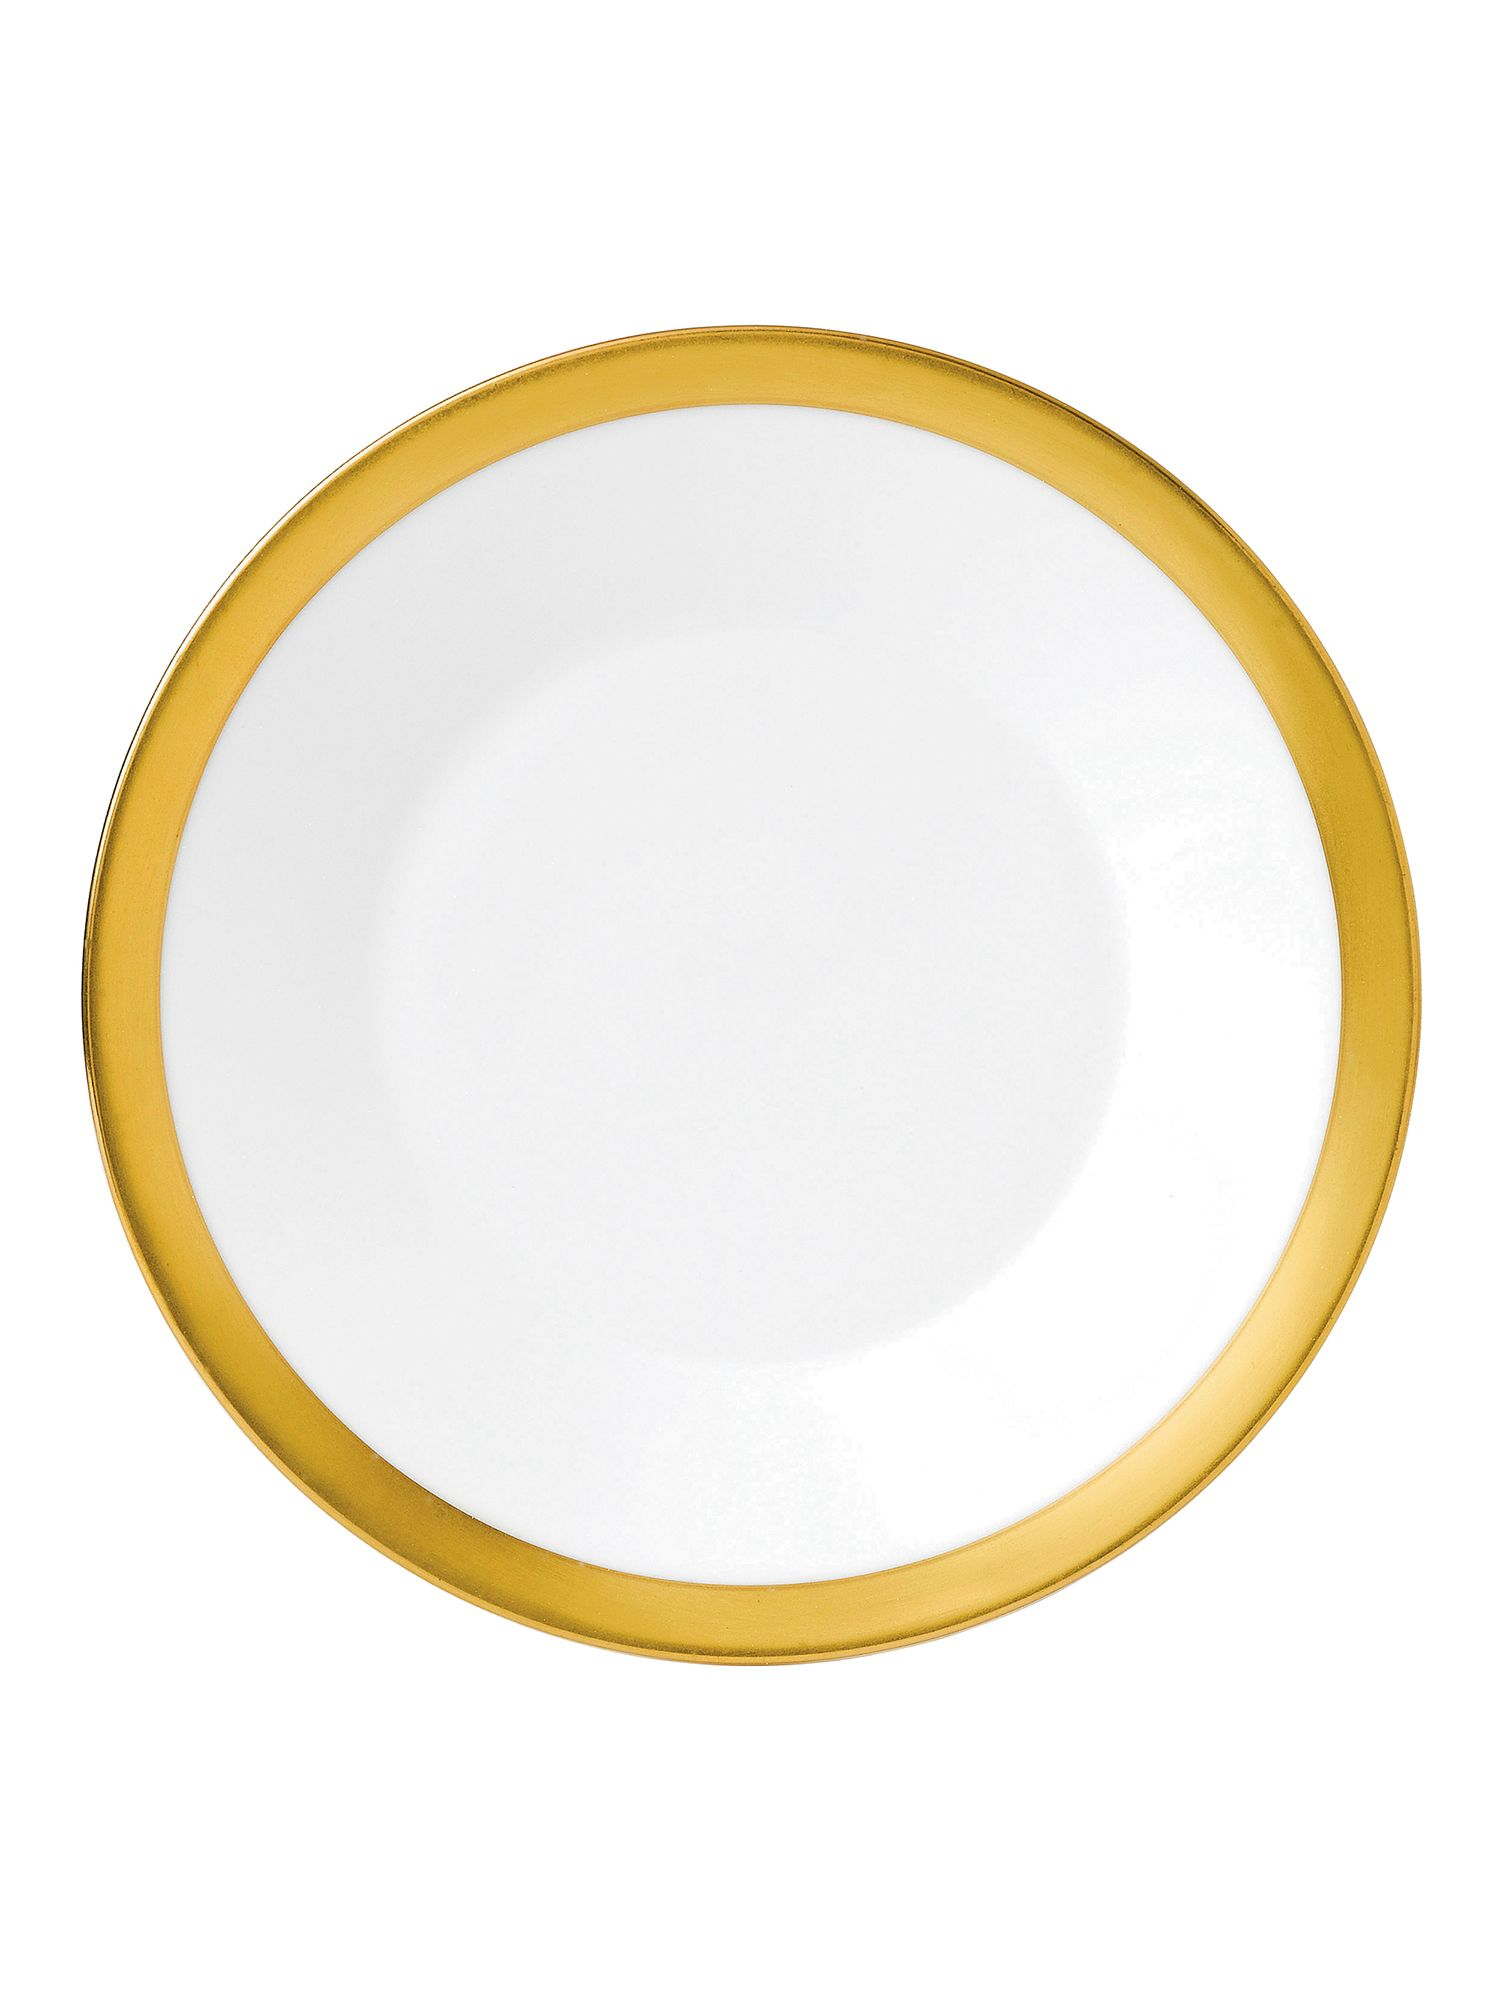 Jasper conran bone china gold banded plate 18cm